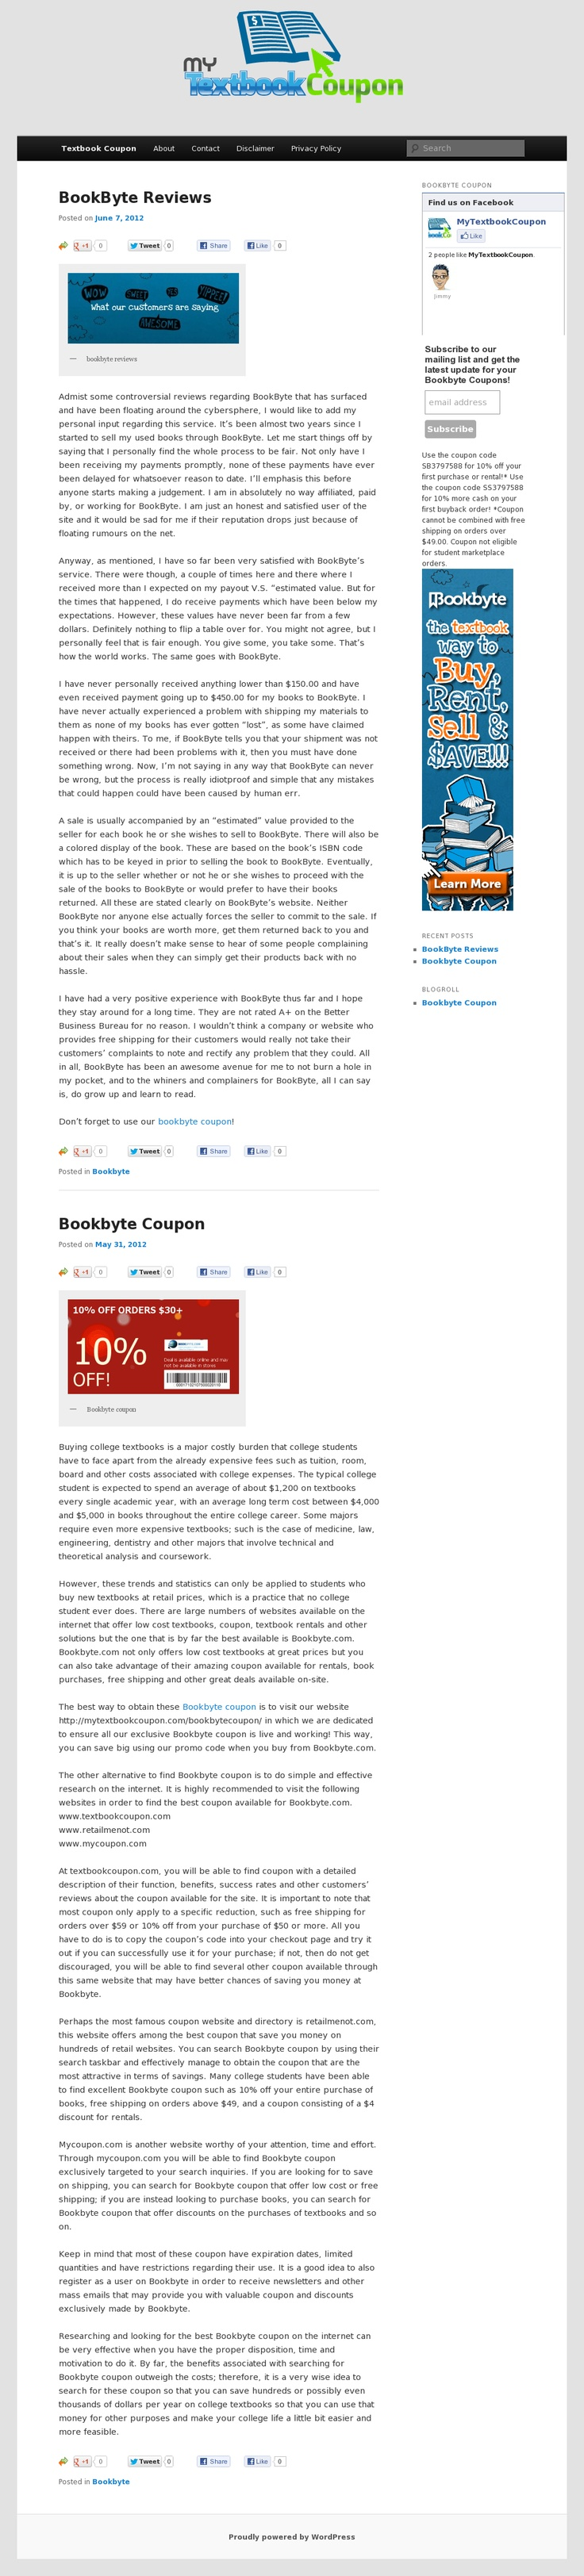 save money using our bookbyte coupons >> bookbyte coupon --> http://mytextbookcoupon.com/bookbytecoupon